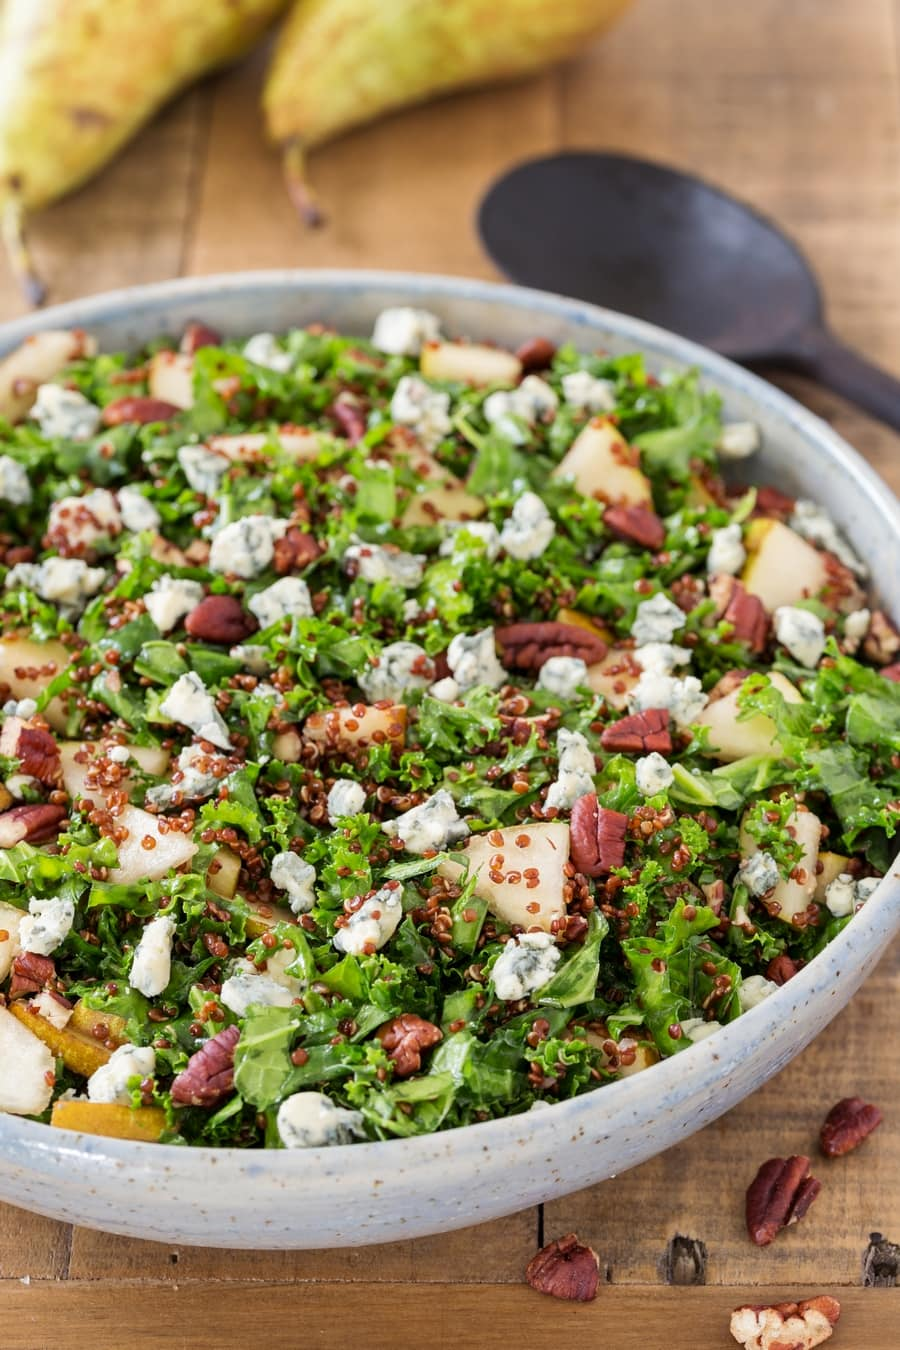 Pear and blue cheese kale and quinoa salad in a bowl.